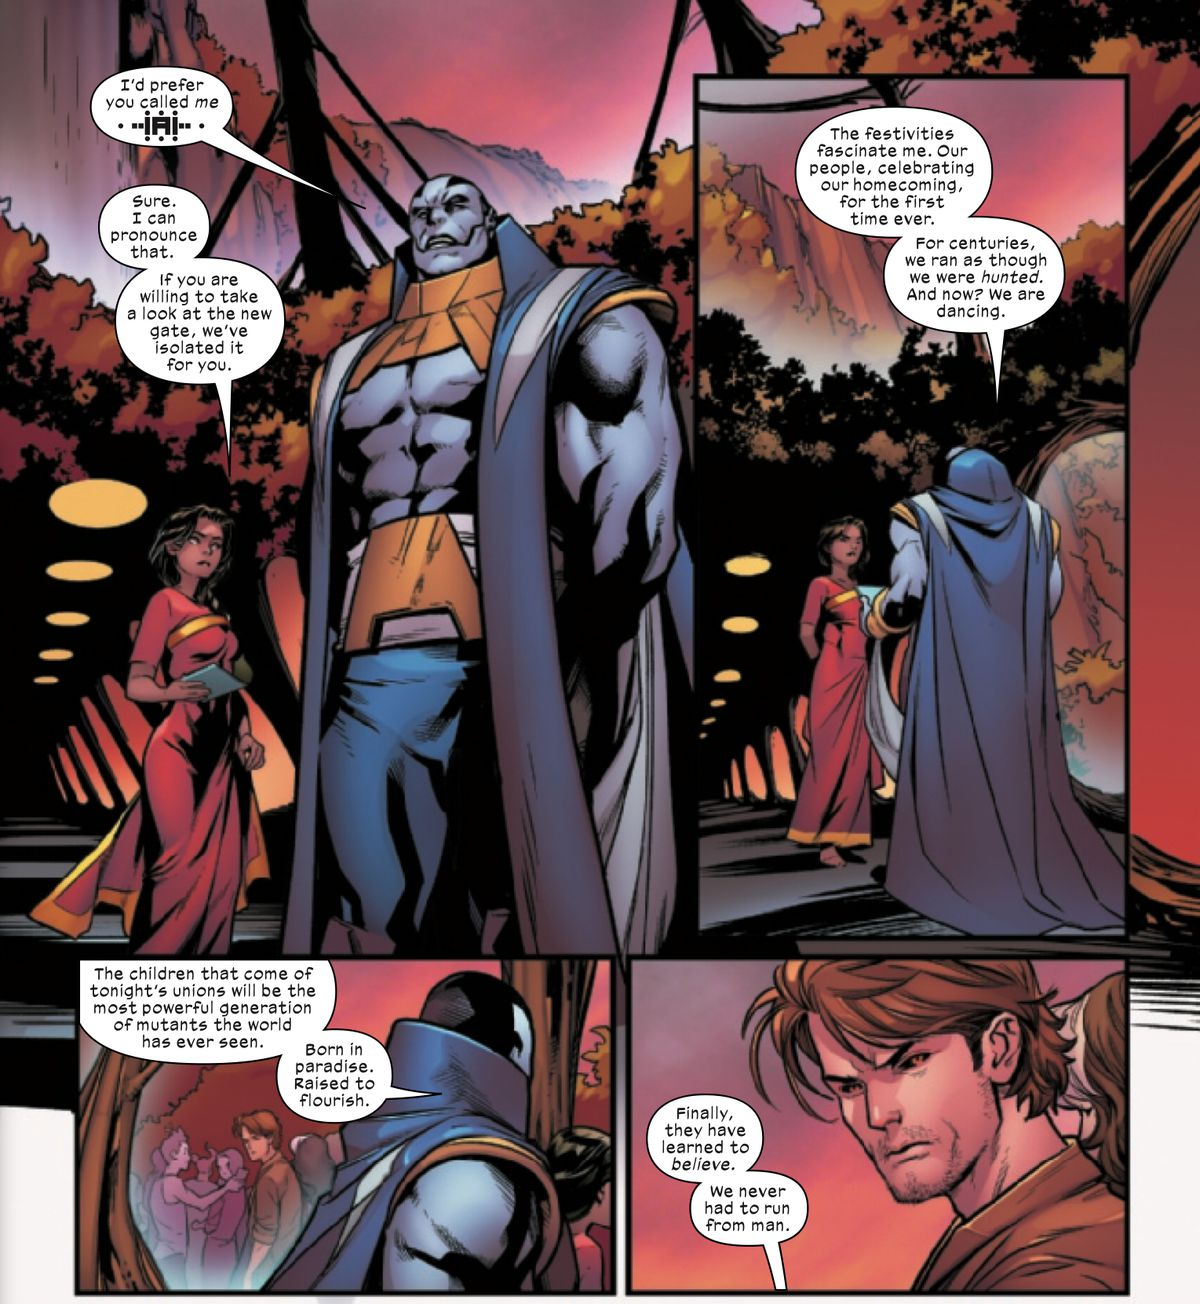 The X-Men villain formerly known as Apocalypse opines on his new name and the strong generation of mutants who will be born on Krakoa, in Excalibur #1, Marvel Comics (2019).